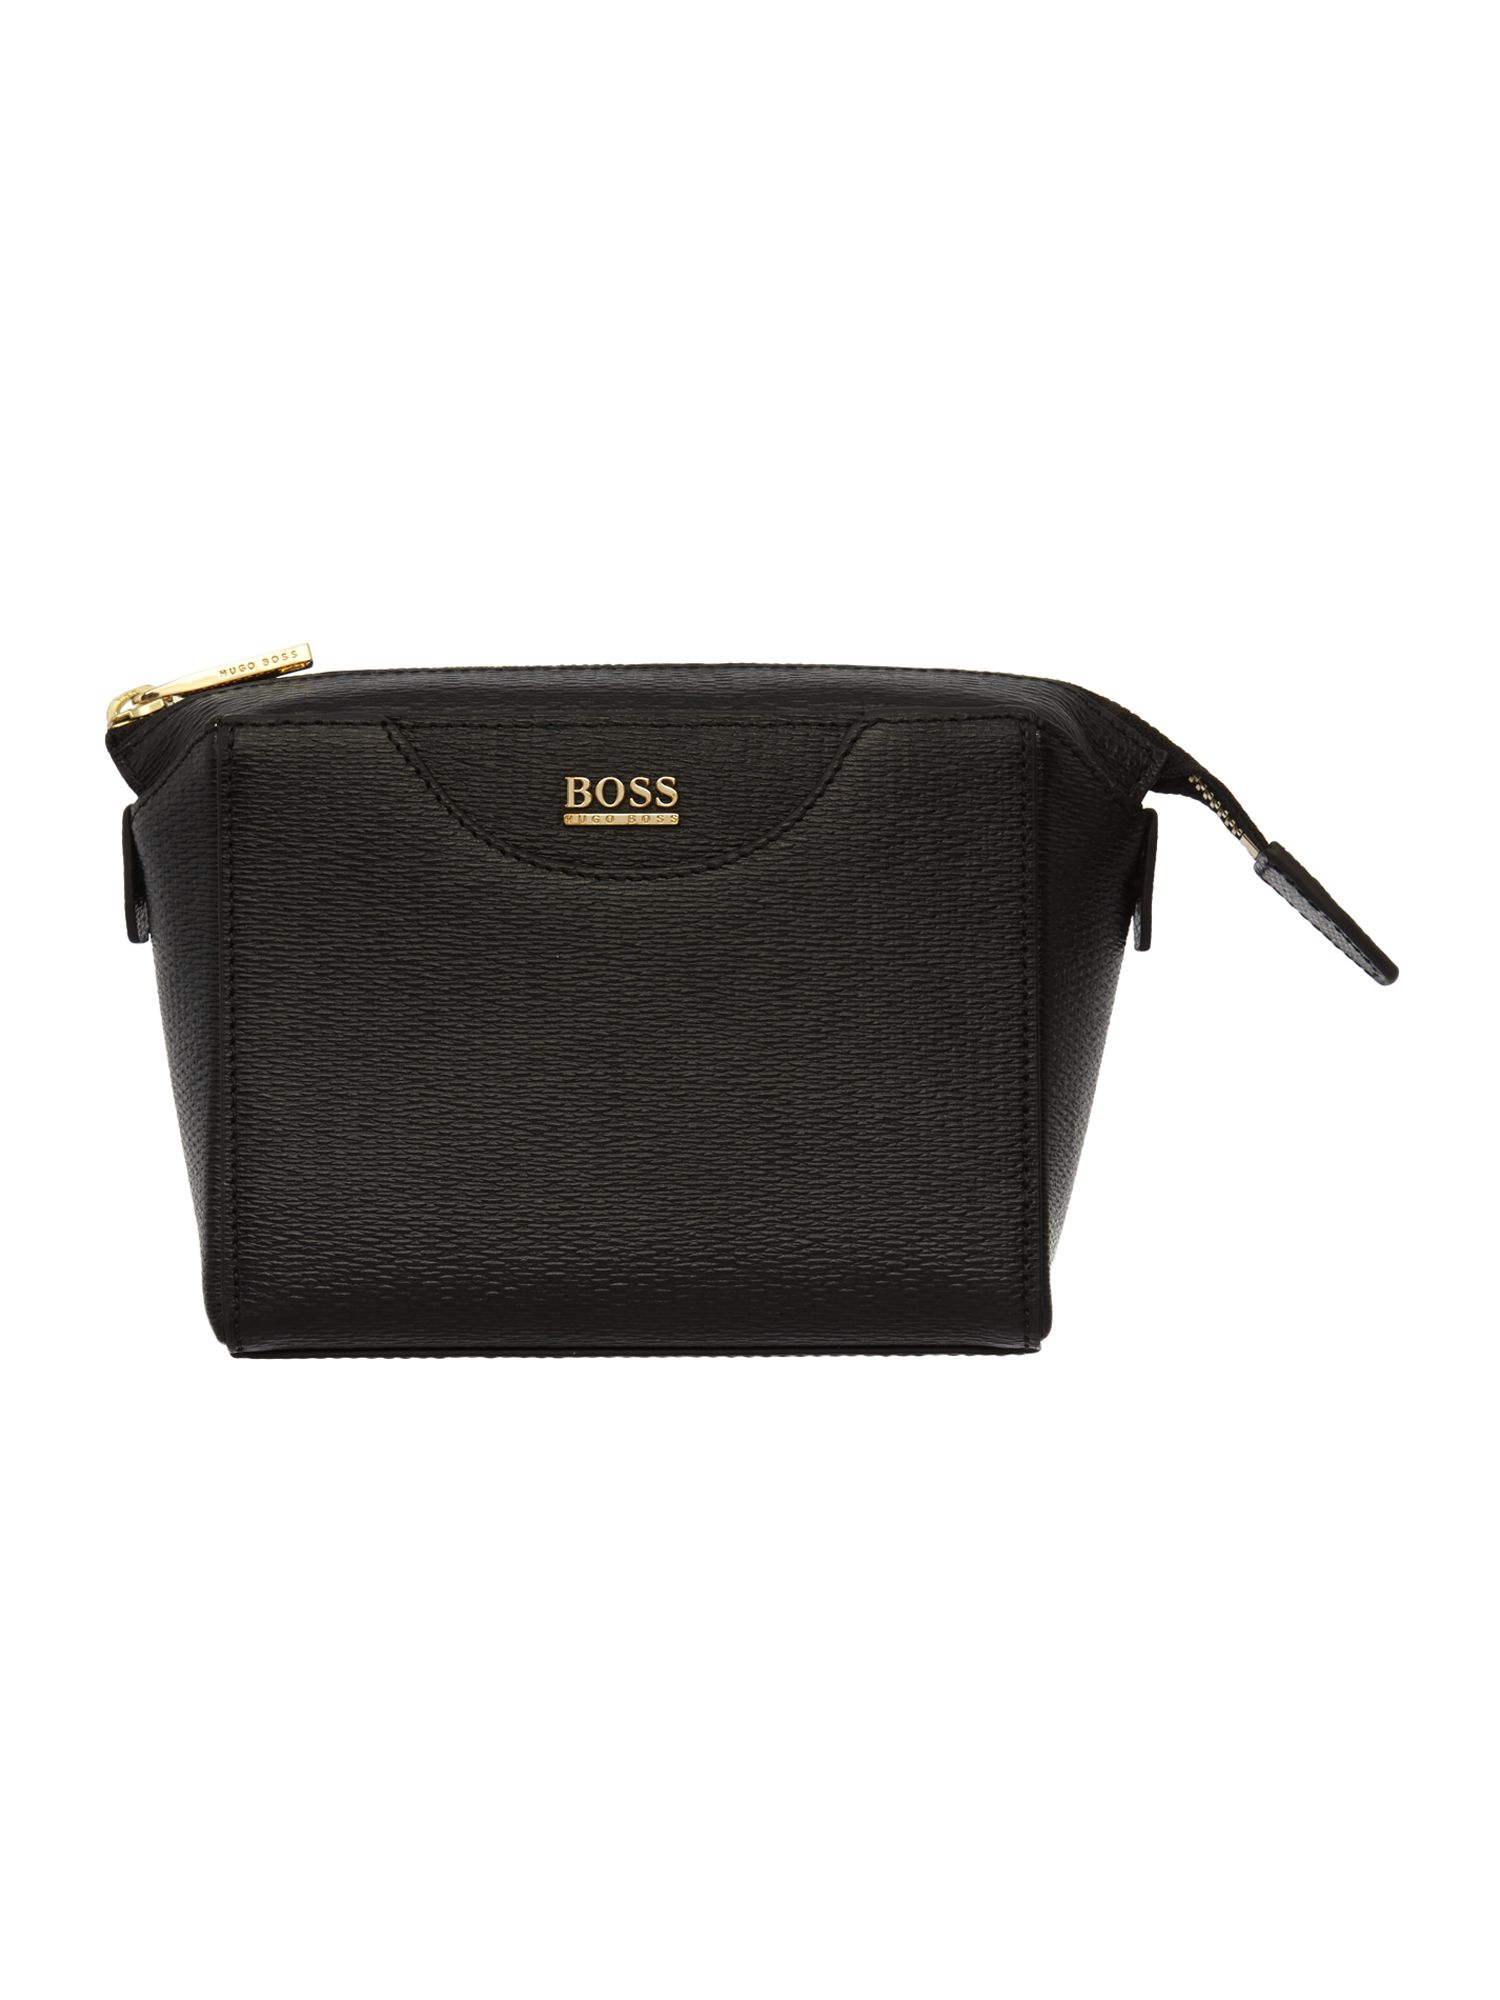 Mosdy black cosmetic bag